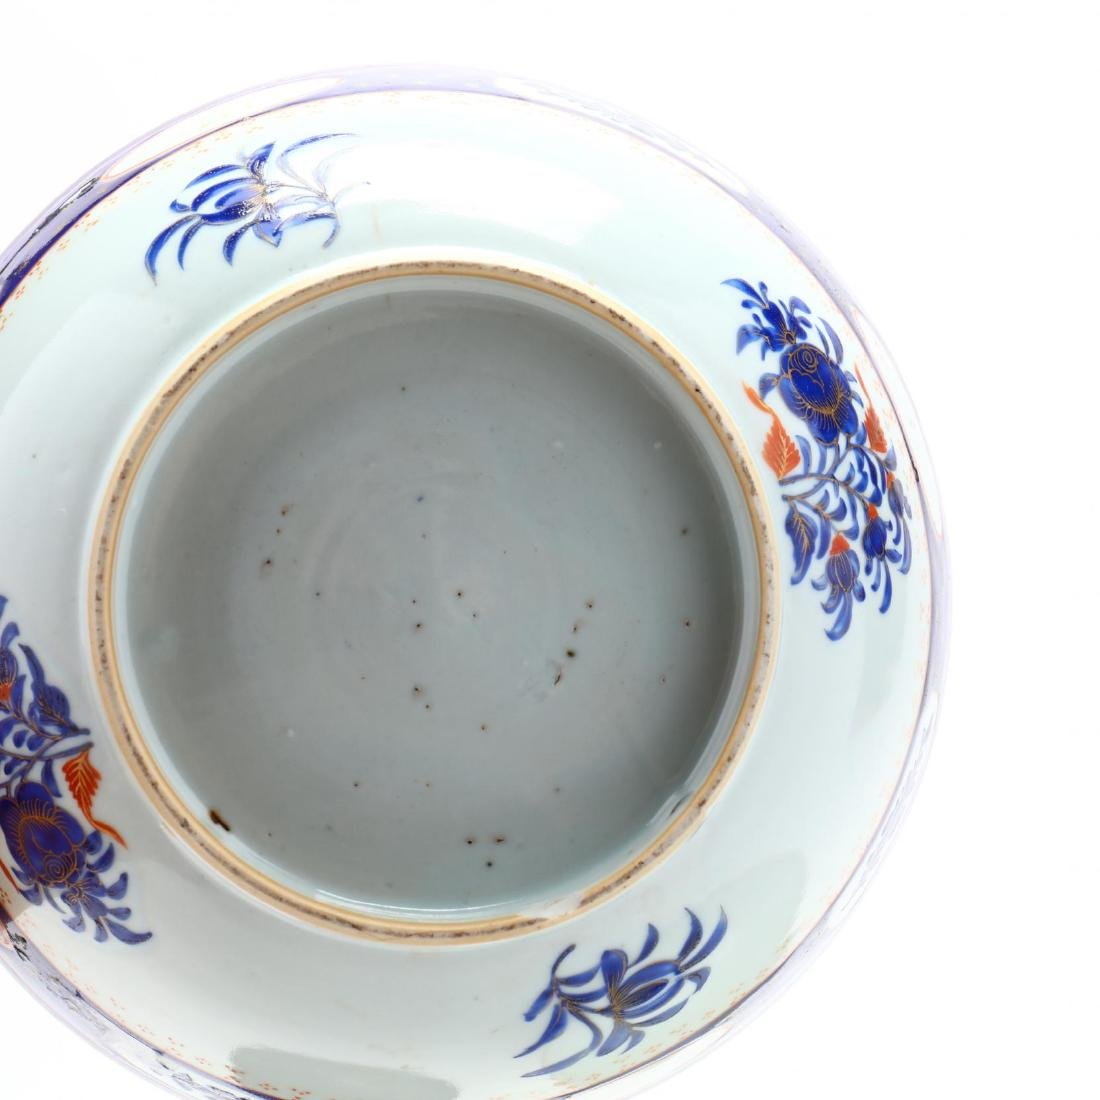 Pair of Antique Chinese Export Porcelain Bowls - 3